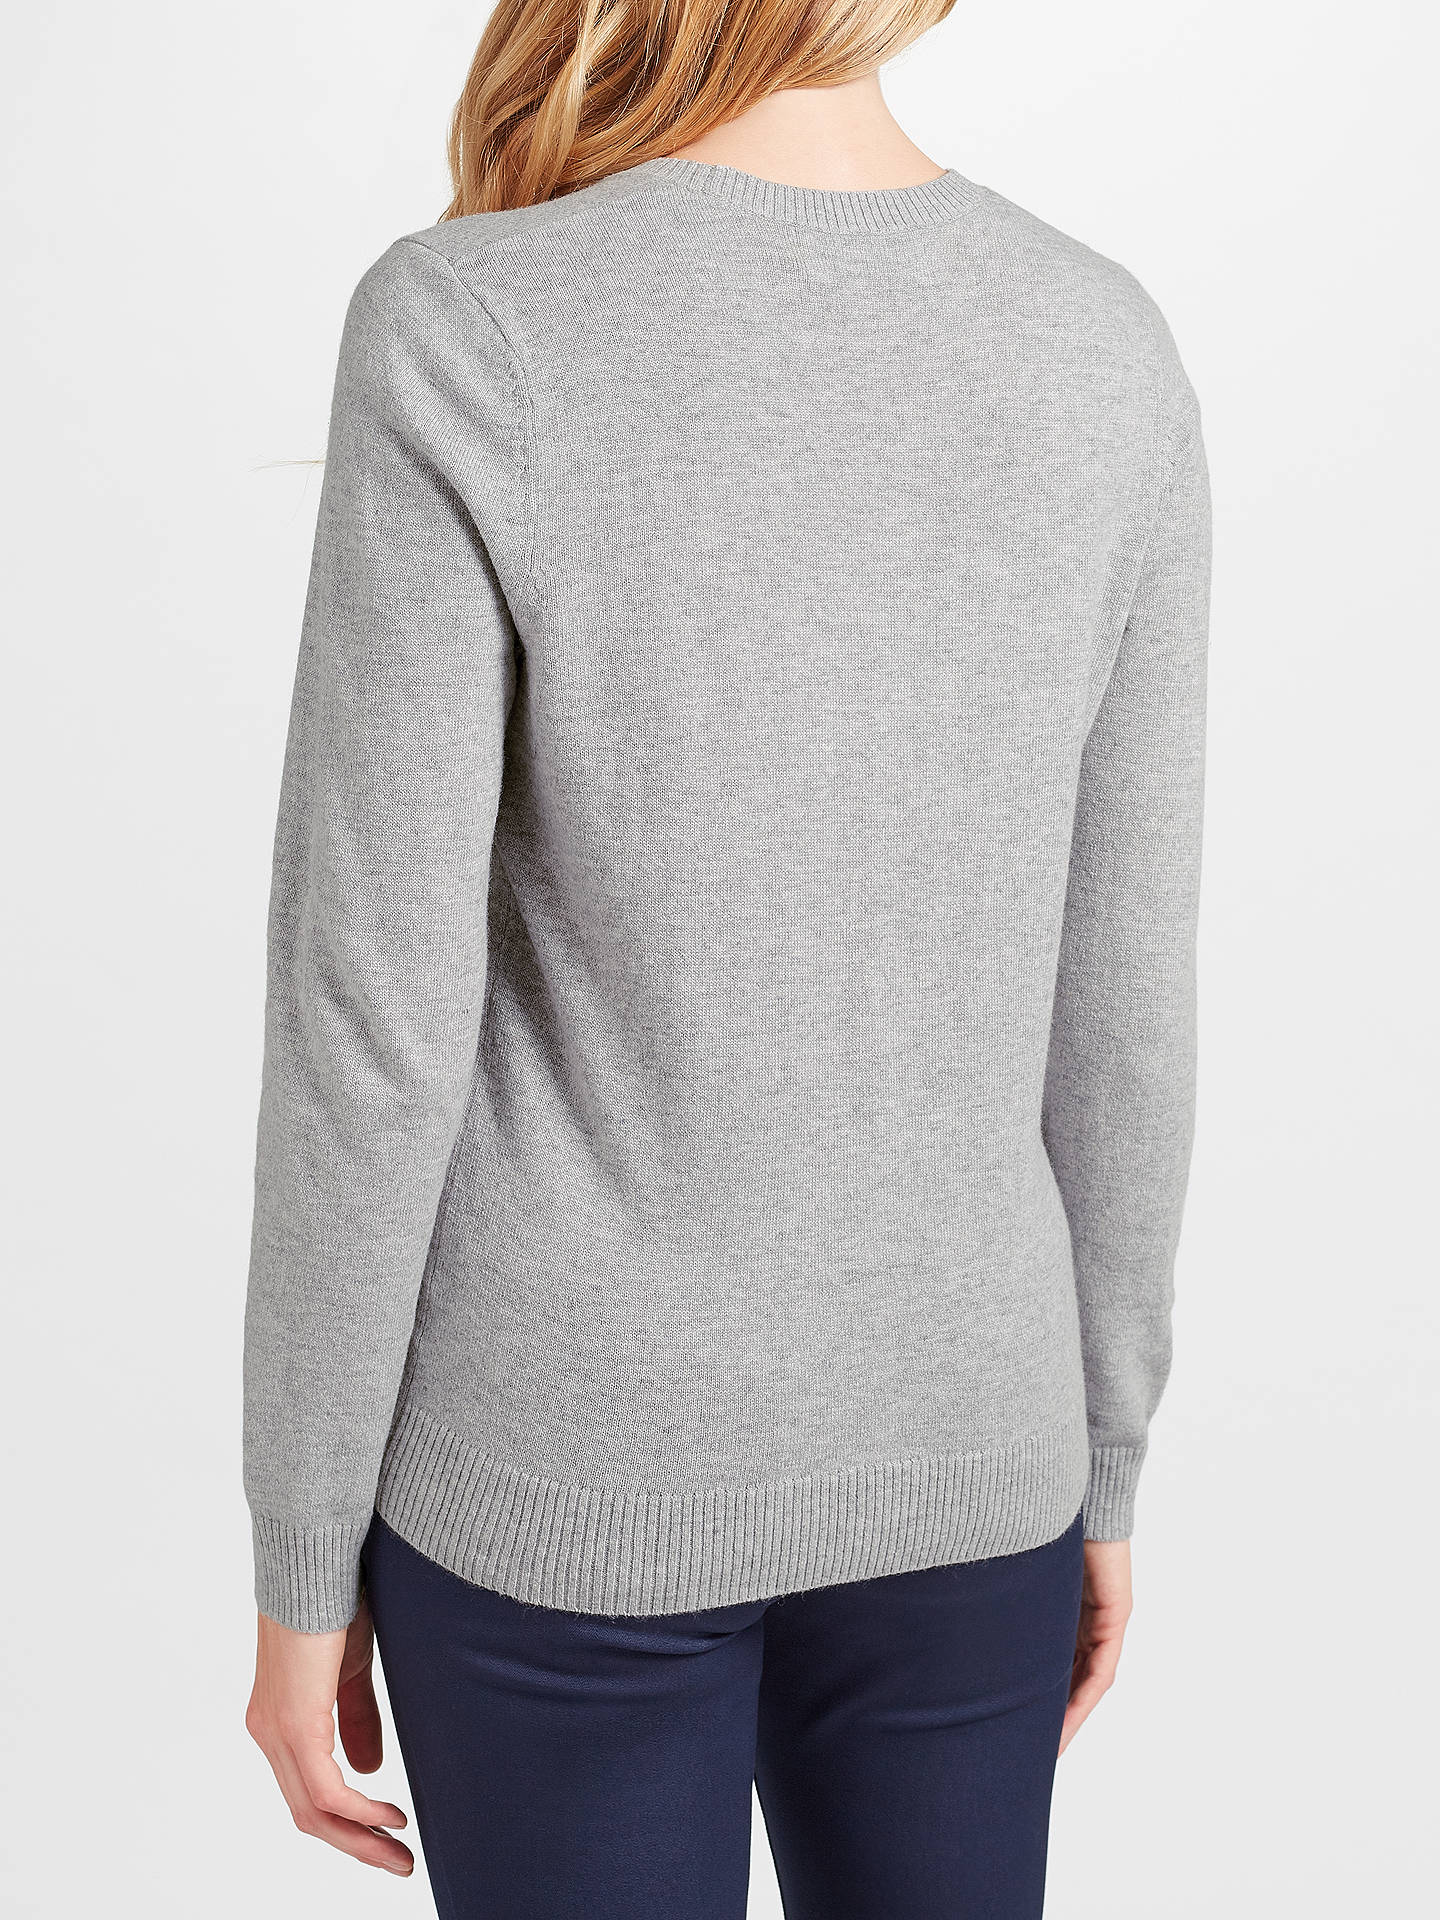 BuyCollection WEEKEND by John Lewis Falling Star Intarsia Jumper, Grey, 8 Online at johnlewis.com